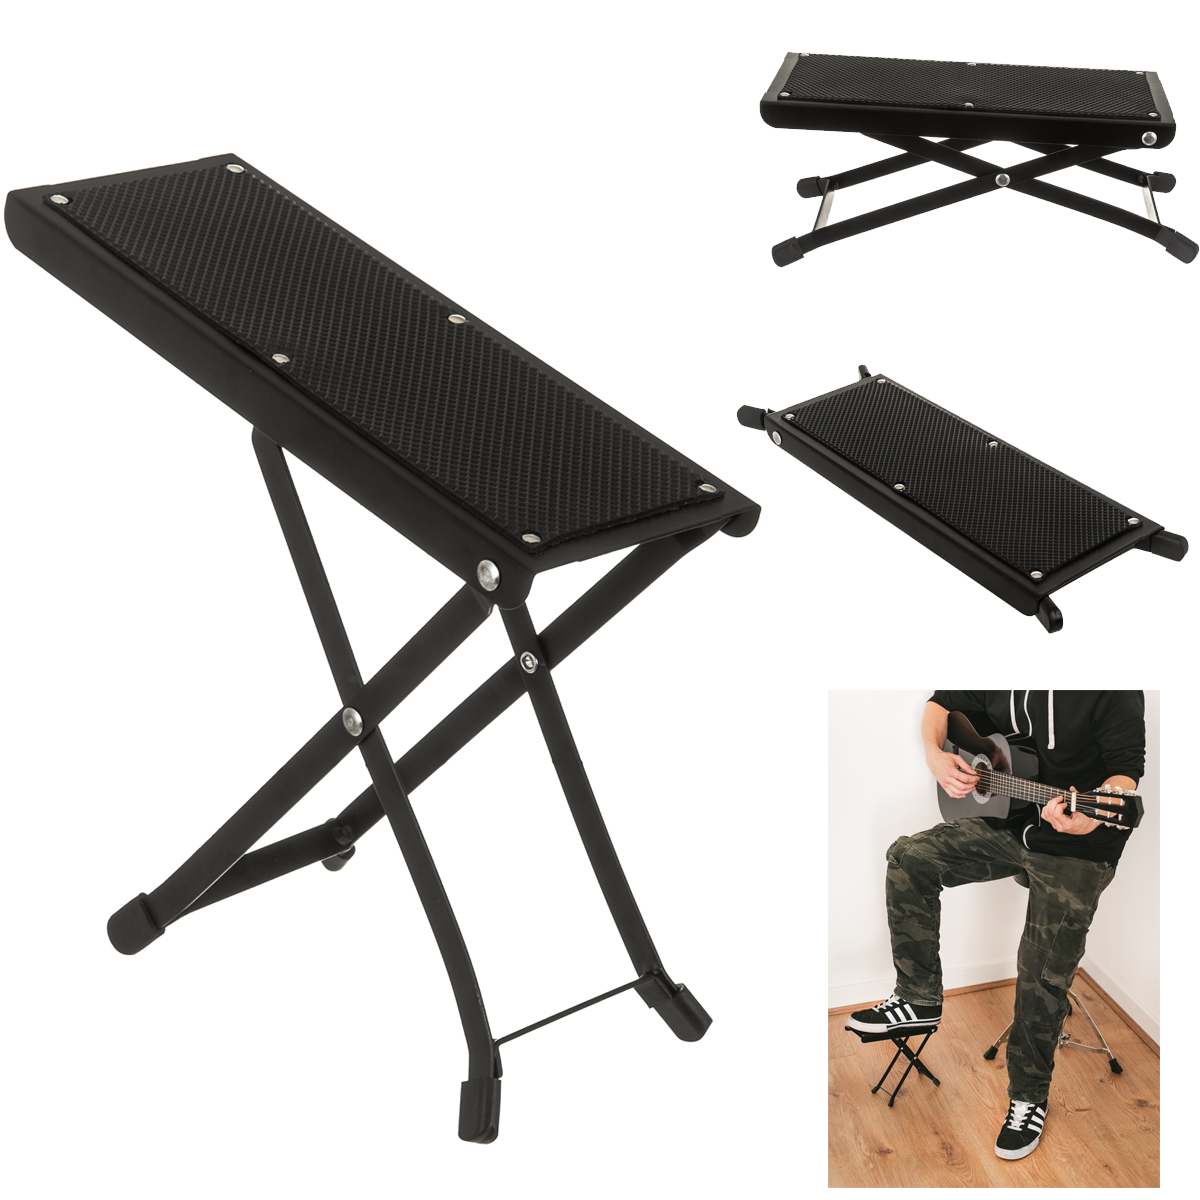 Outstanding Details About Guitar Foot Stool Black Folding Footstool Rest Acoustic Classical Practice Uk Evergreenethics Interior Chair Design Evergreenethicsorg